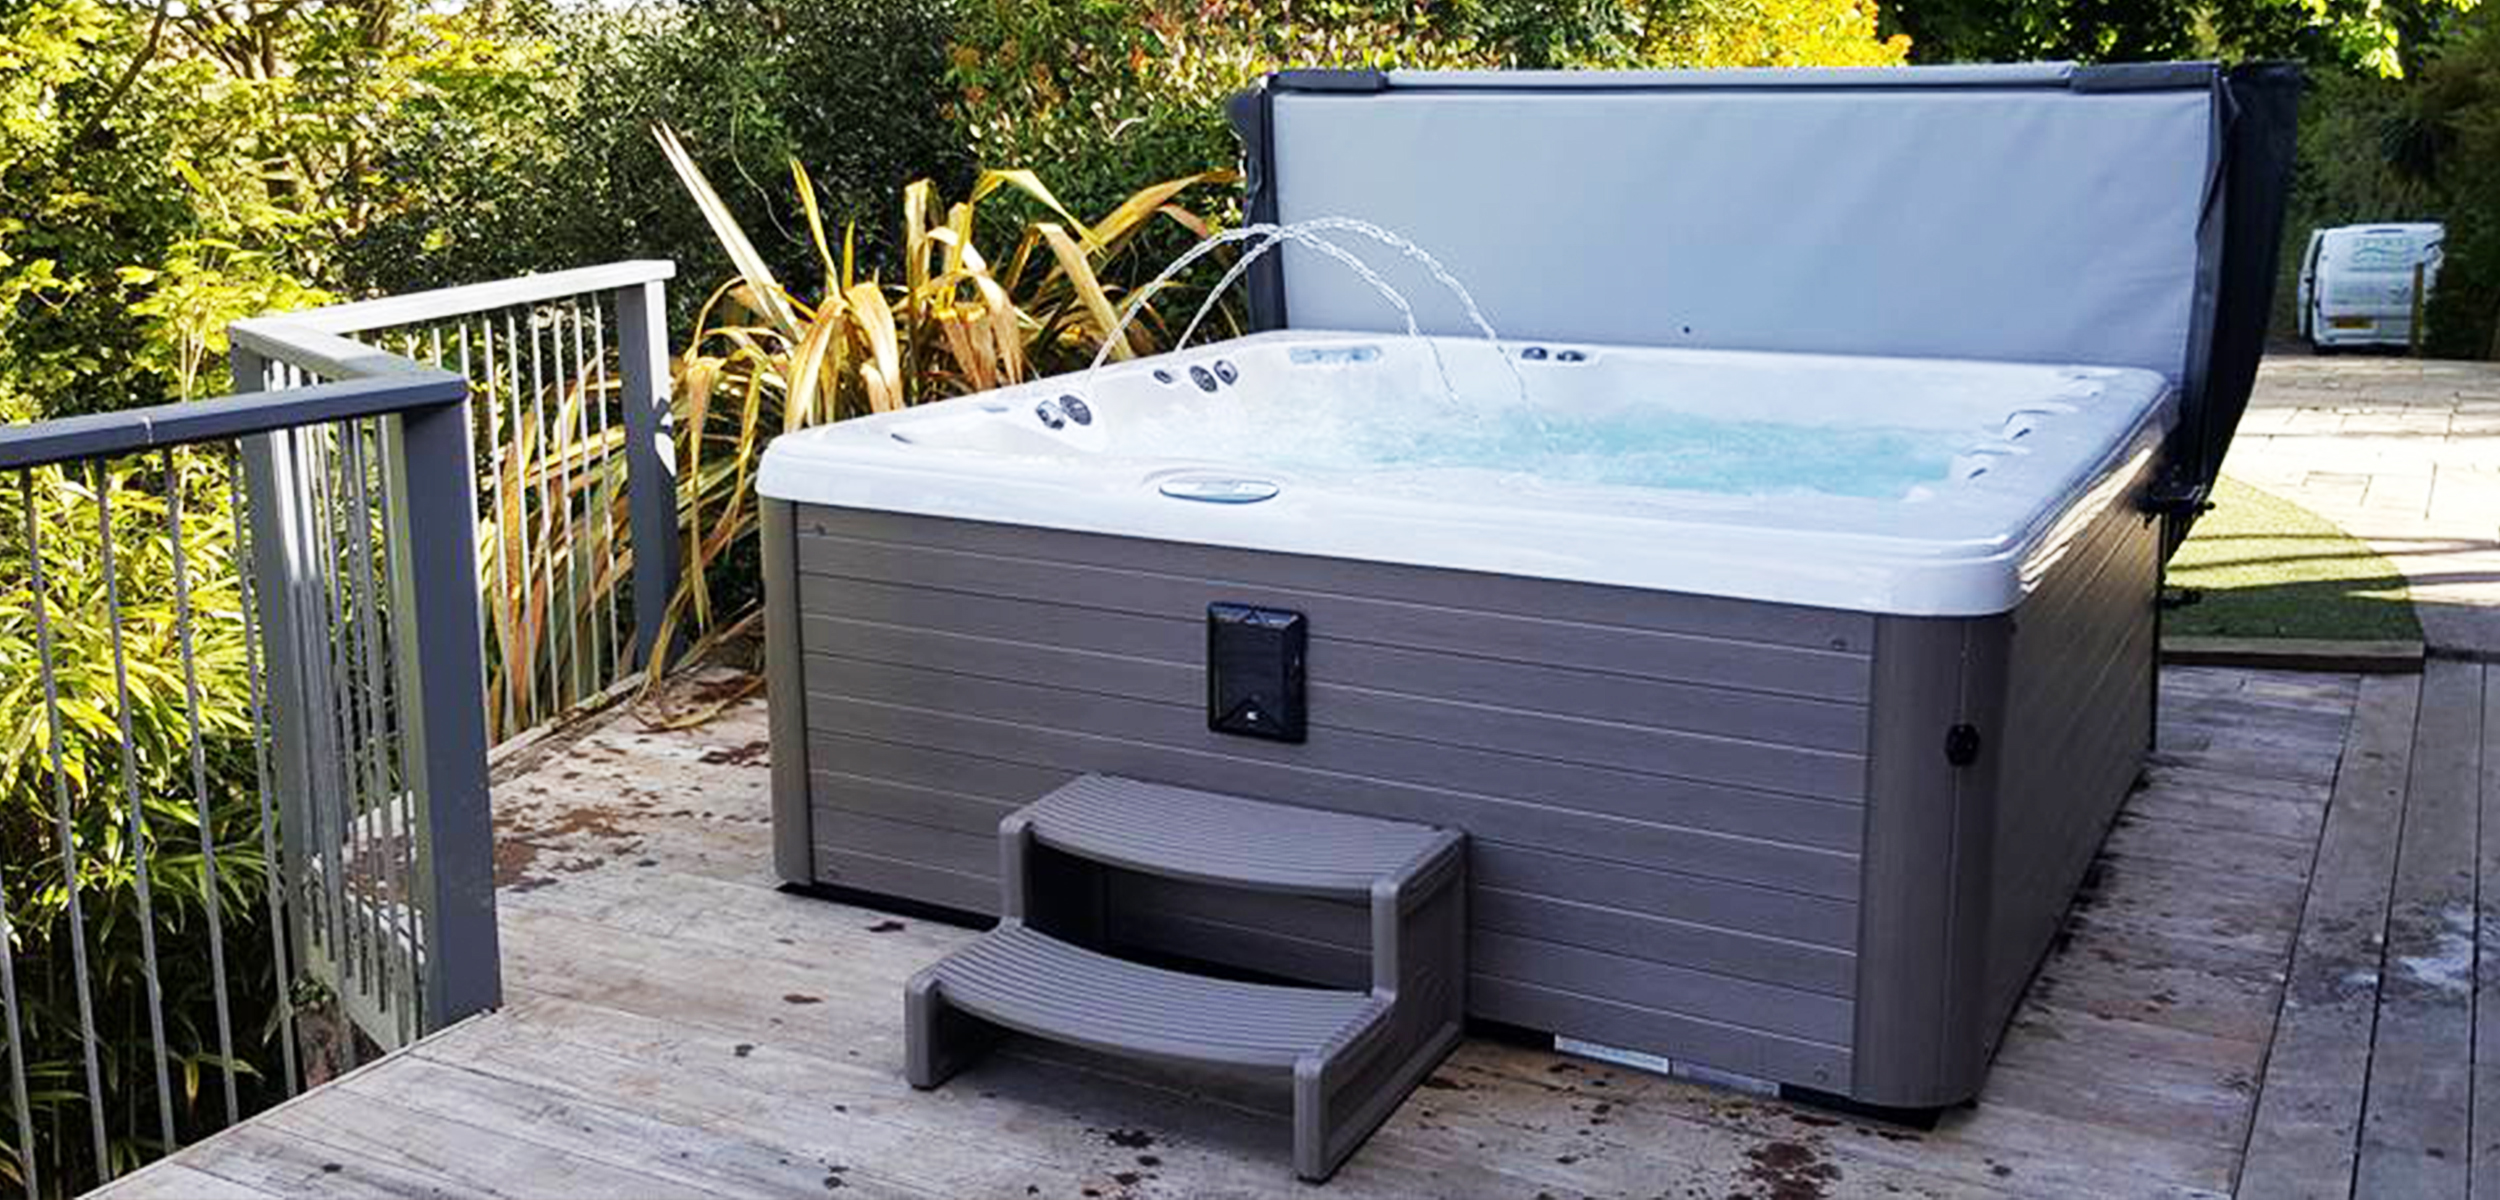 need a hot tub - removed?